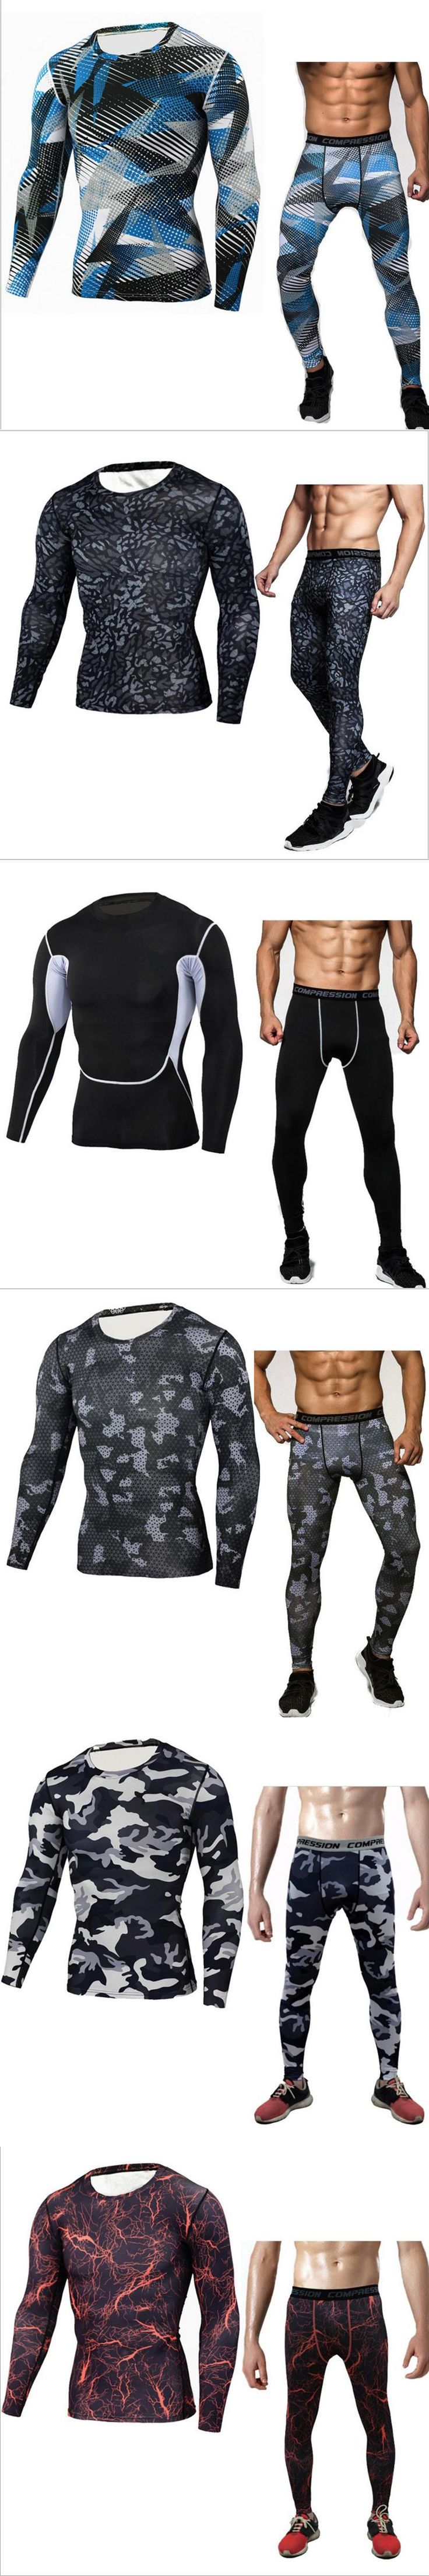 New Brand Golds Sporting short sleeve Fitness T-Shirt Bodybuilding Clothing fit Compression Shirt Men gyms T Shirt Plus Size